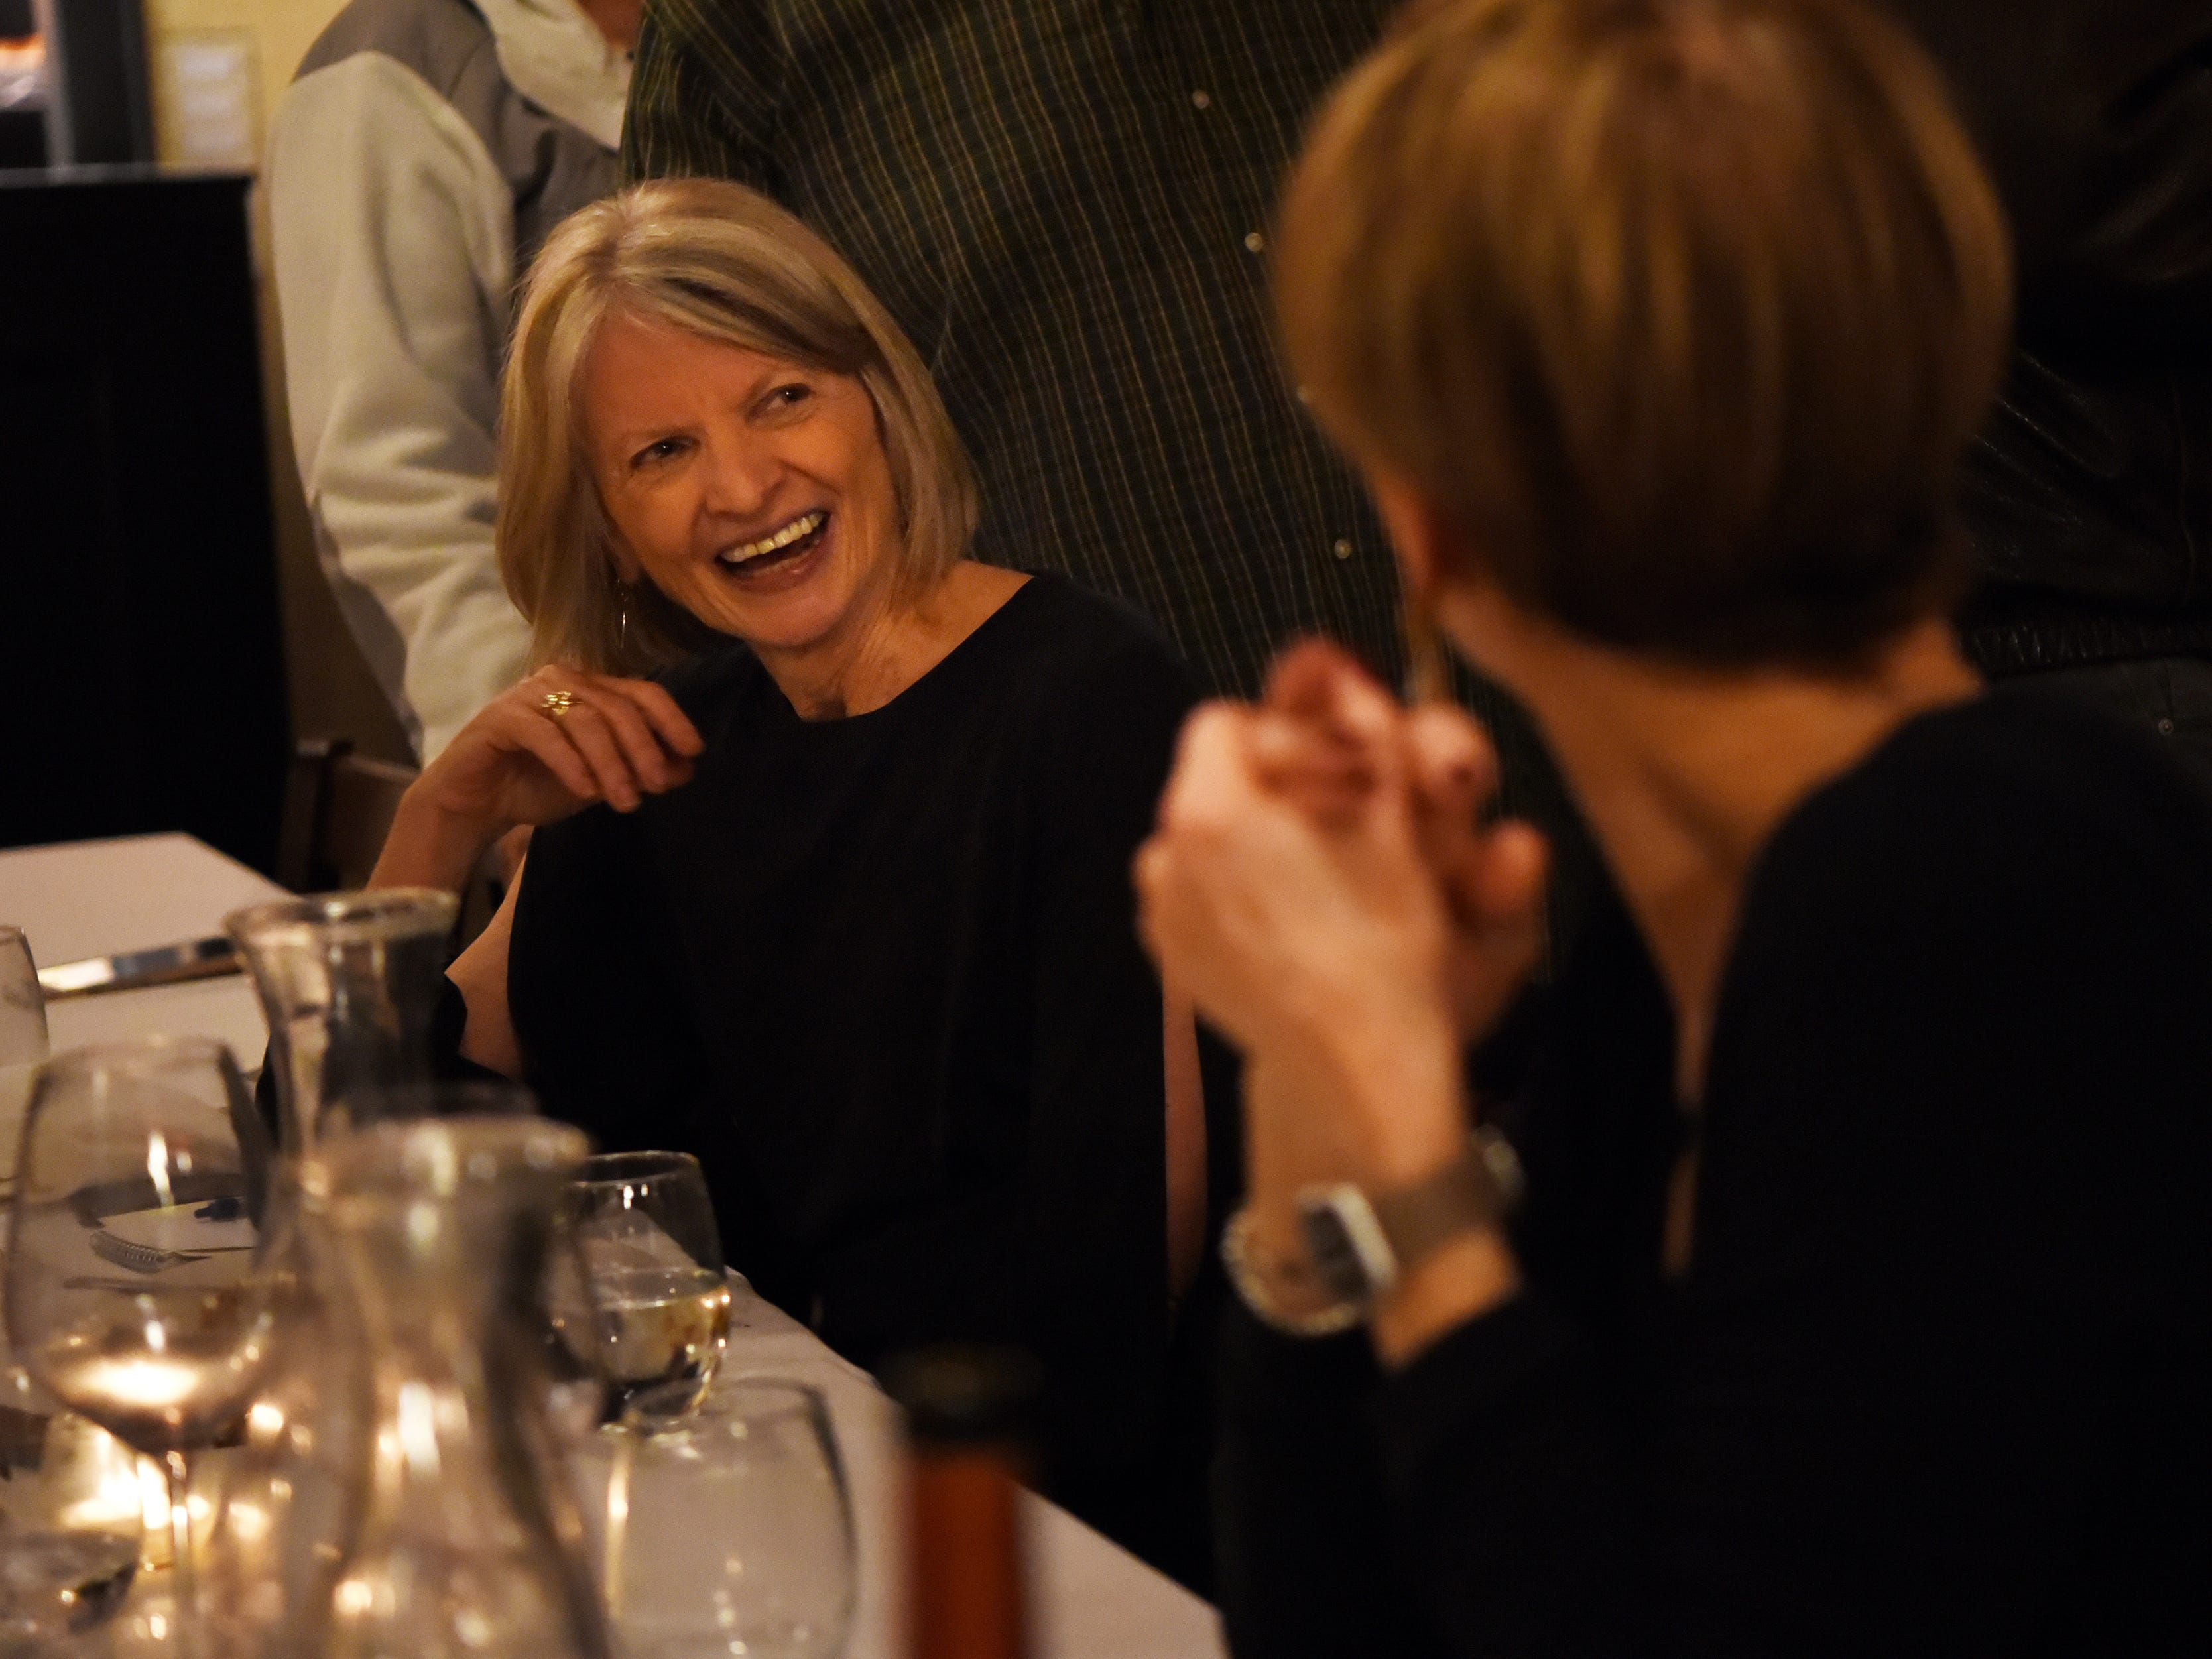 Food editor Esther Davidowitz chats with guests during the dinner with Esther event at Technique, a French restaurant in Westwood on Thursday February 7, 2019.